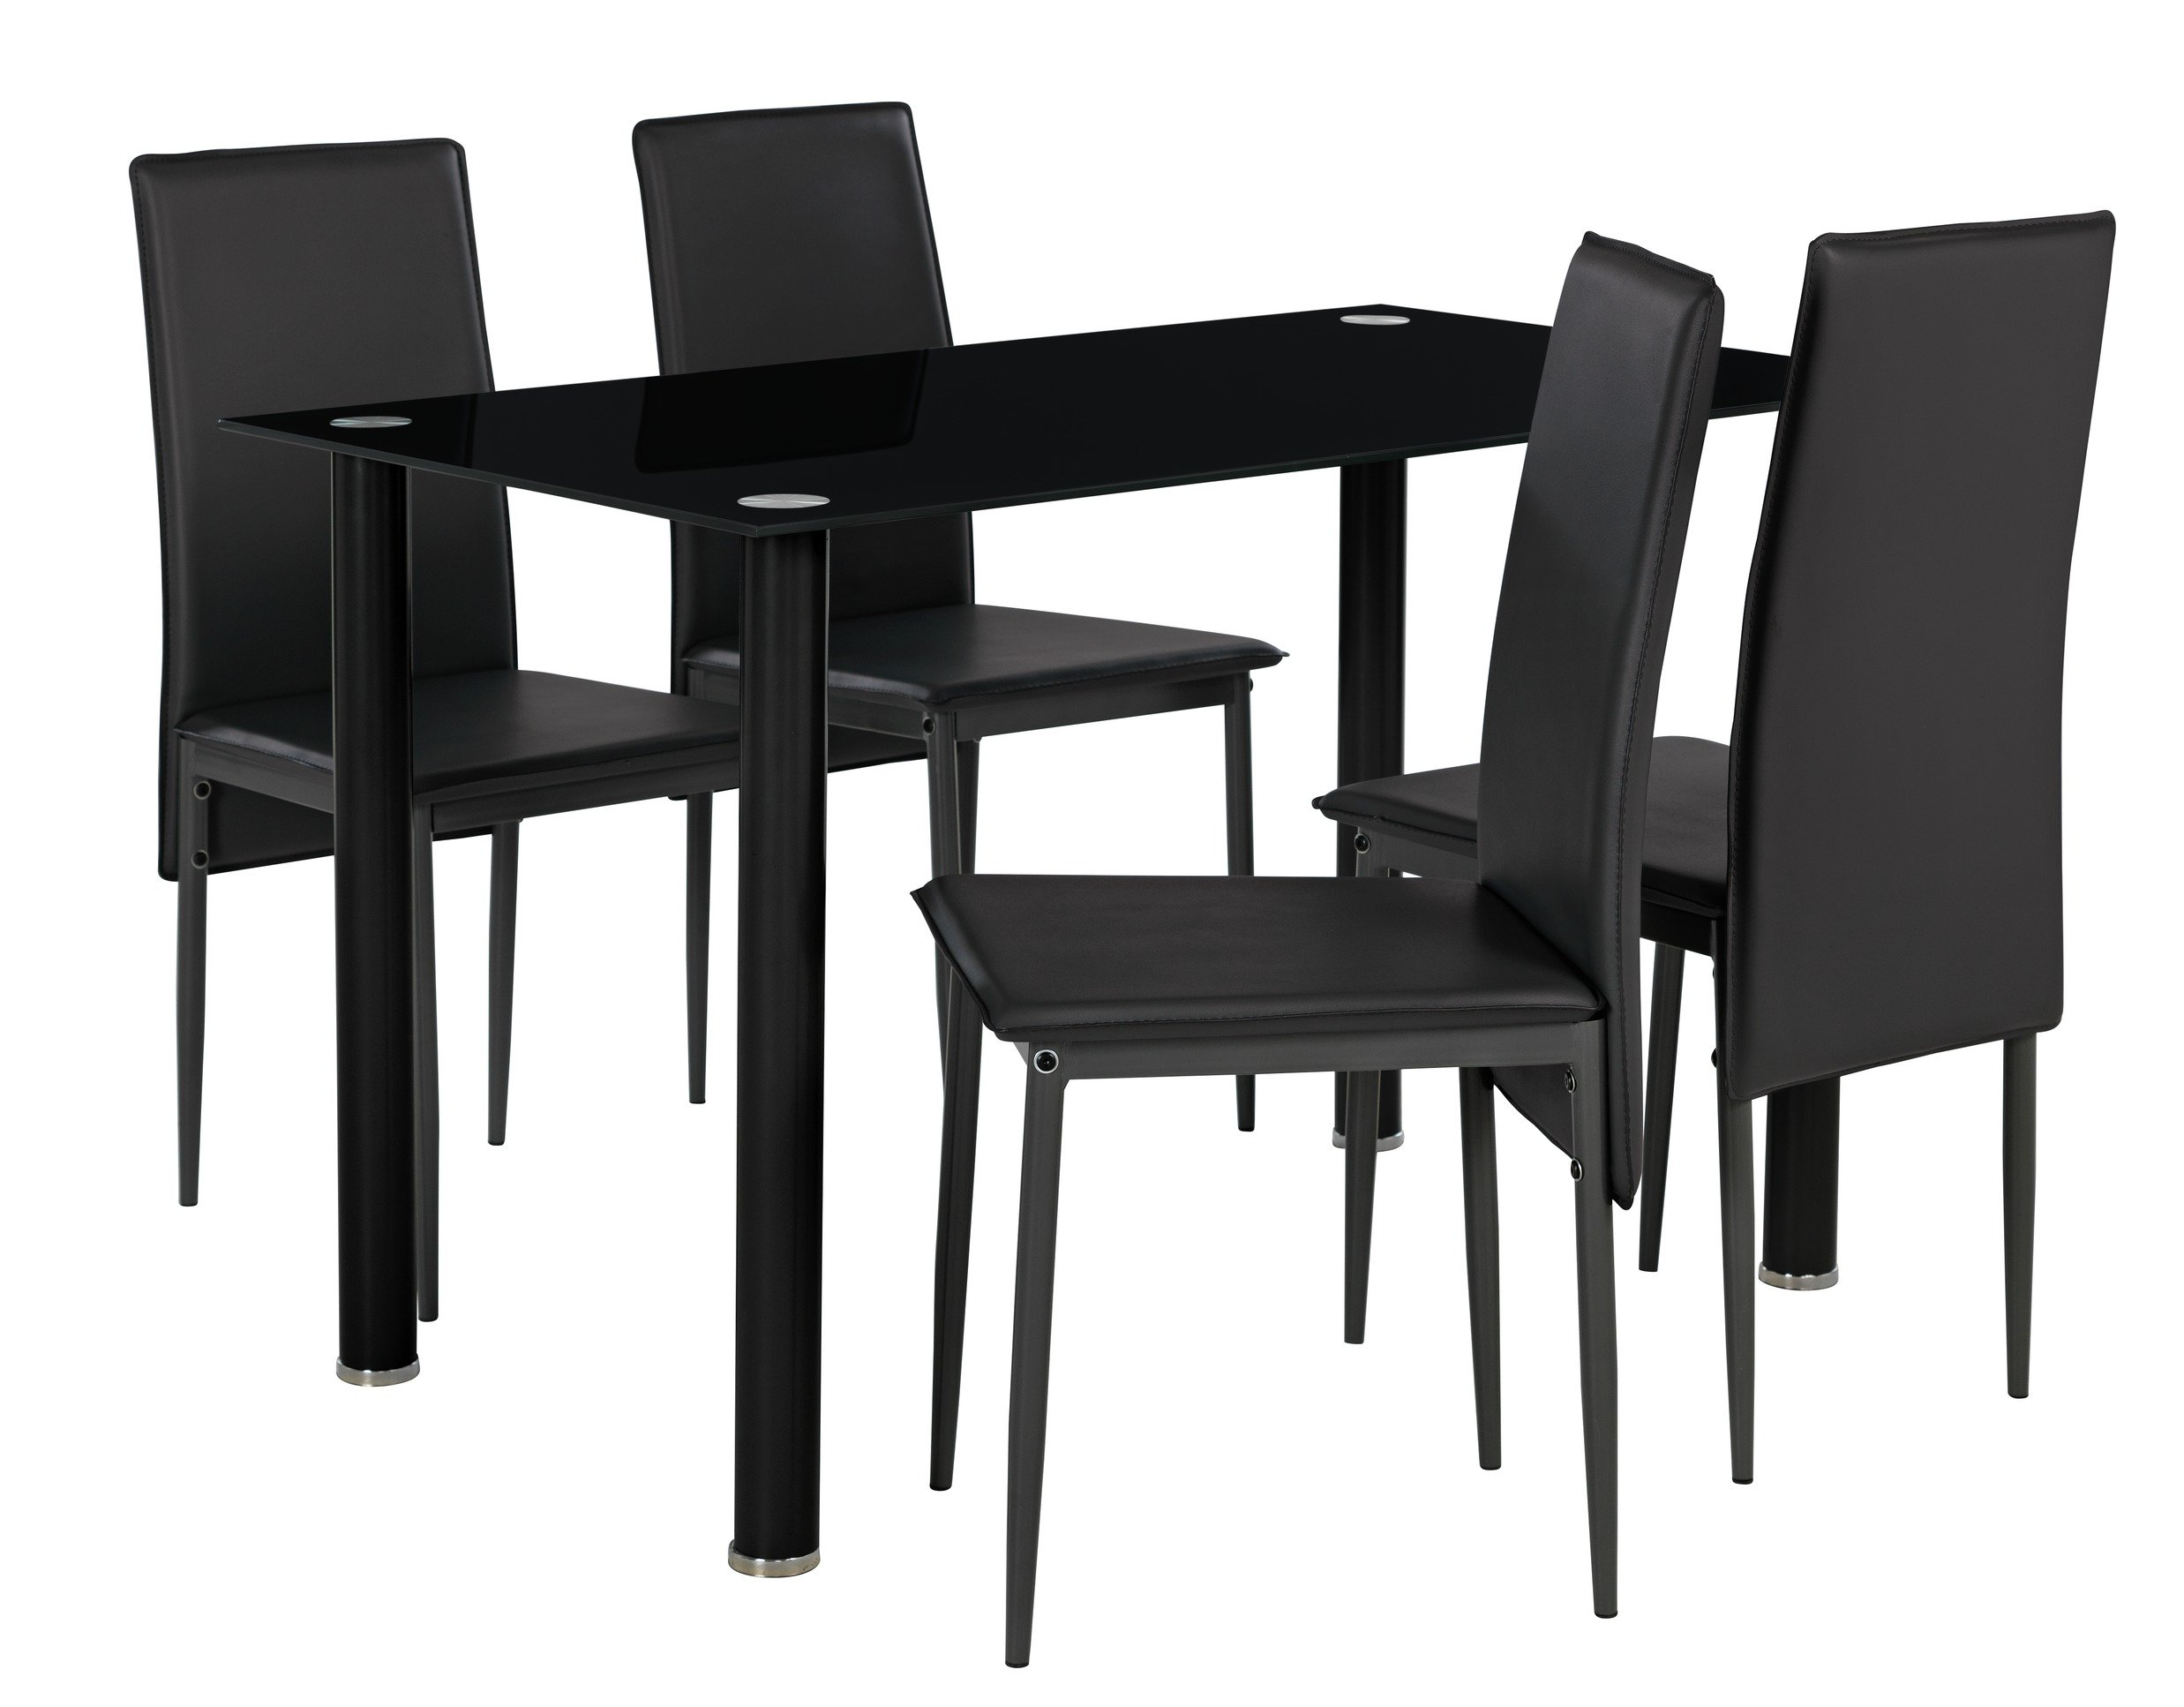 Argos Home Flynn Round Leg Glass Table & 4 Chairs review